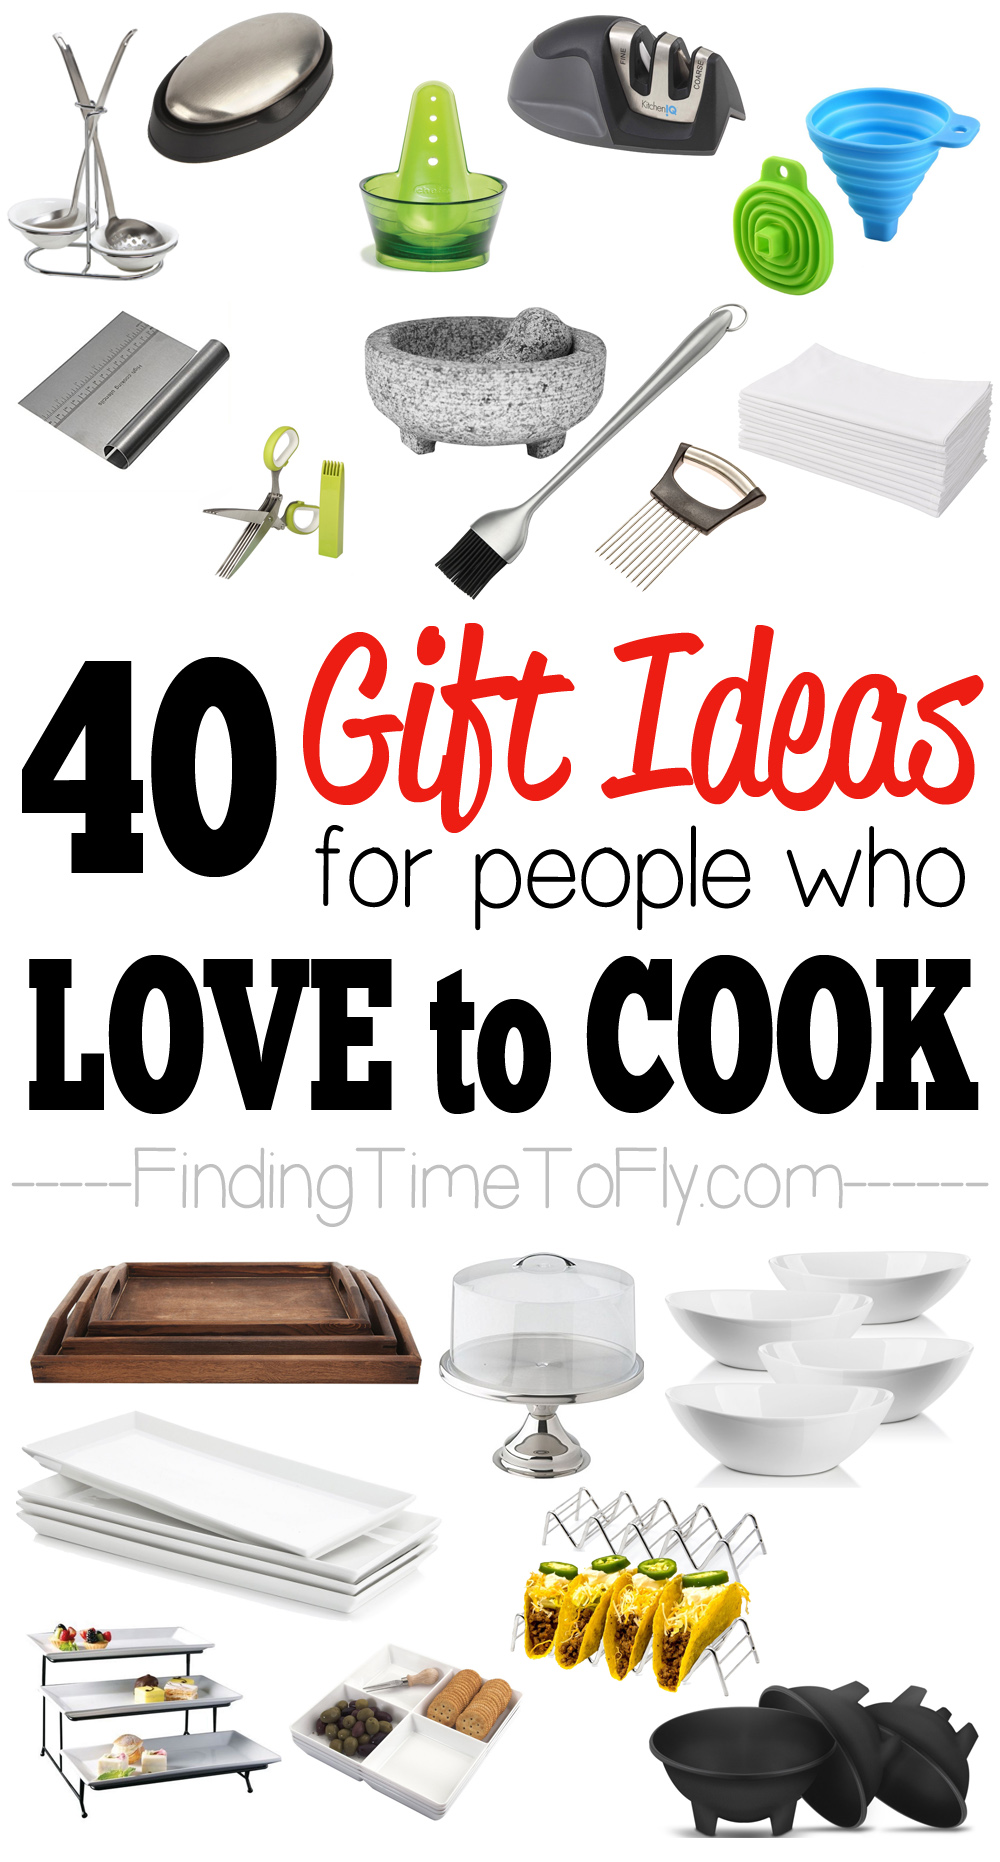 40 Kitchen Gifts and Gadgets that are great gift ideas for people who love to cook!